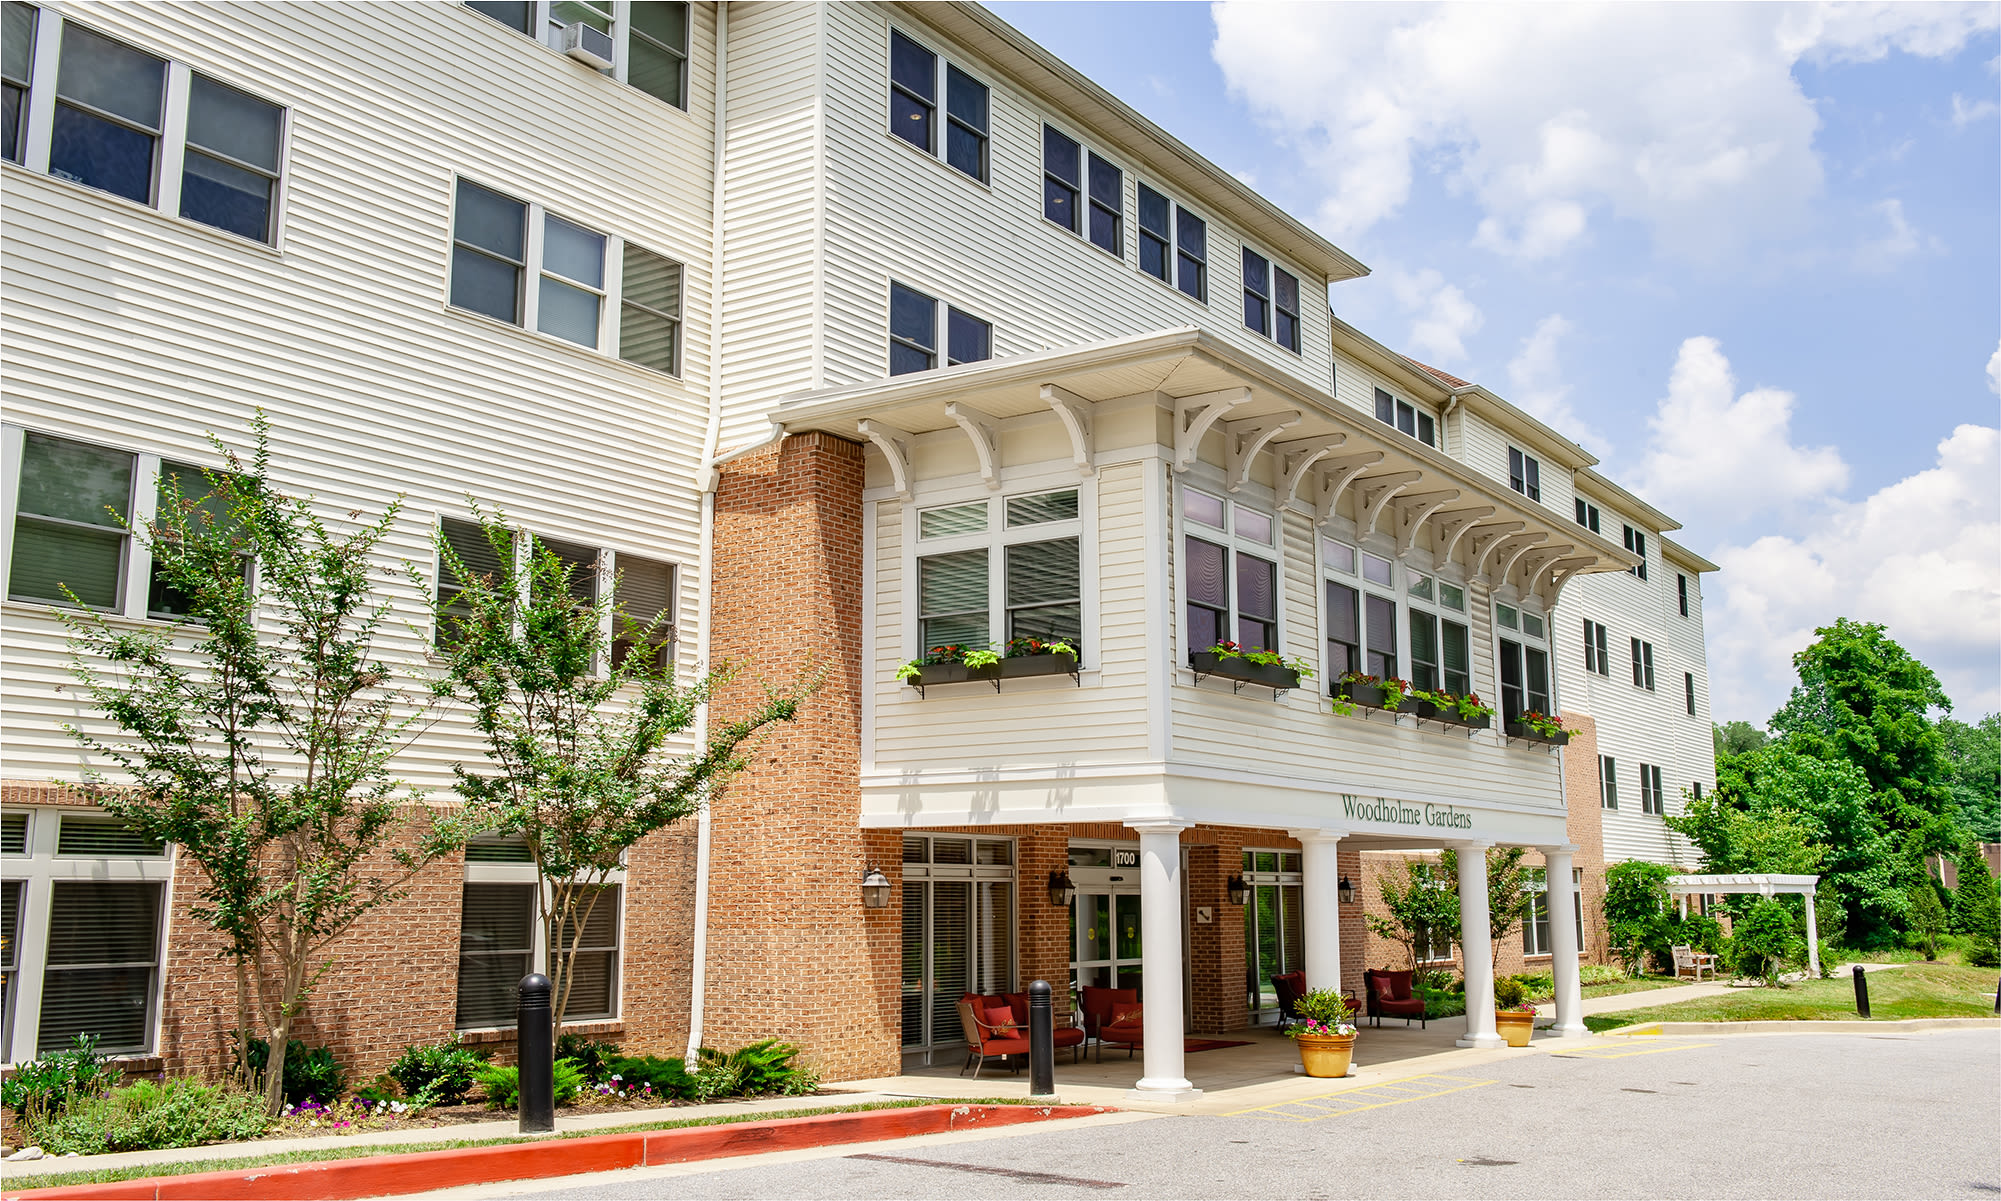 senior living at Woodholme Gardens in Pikesville, Maryland.